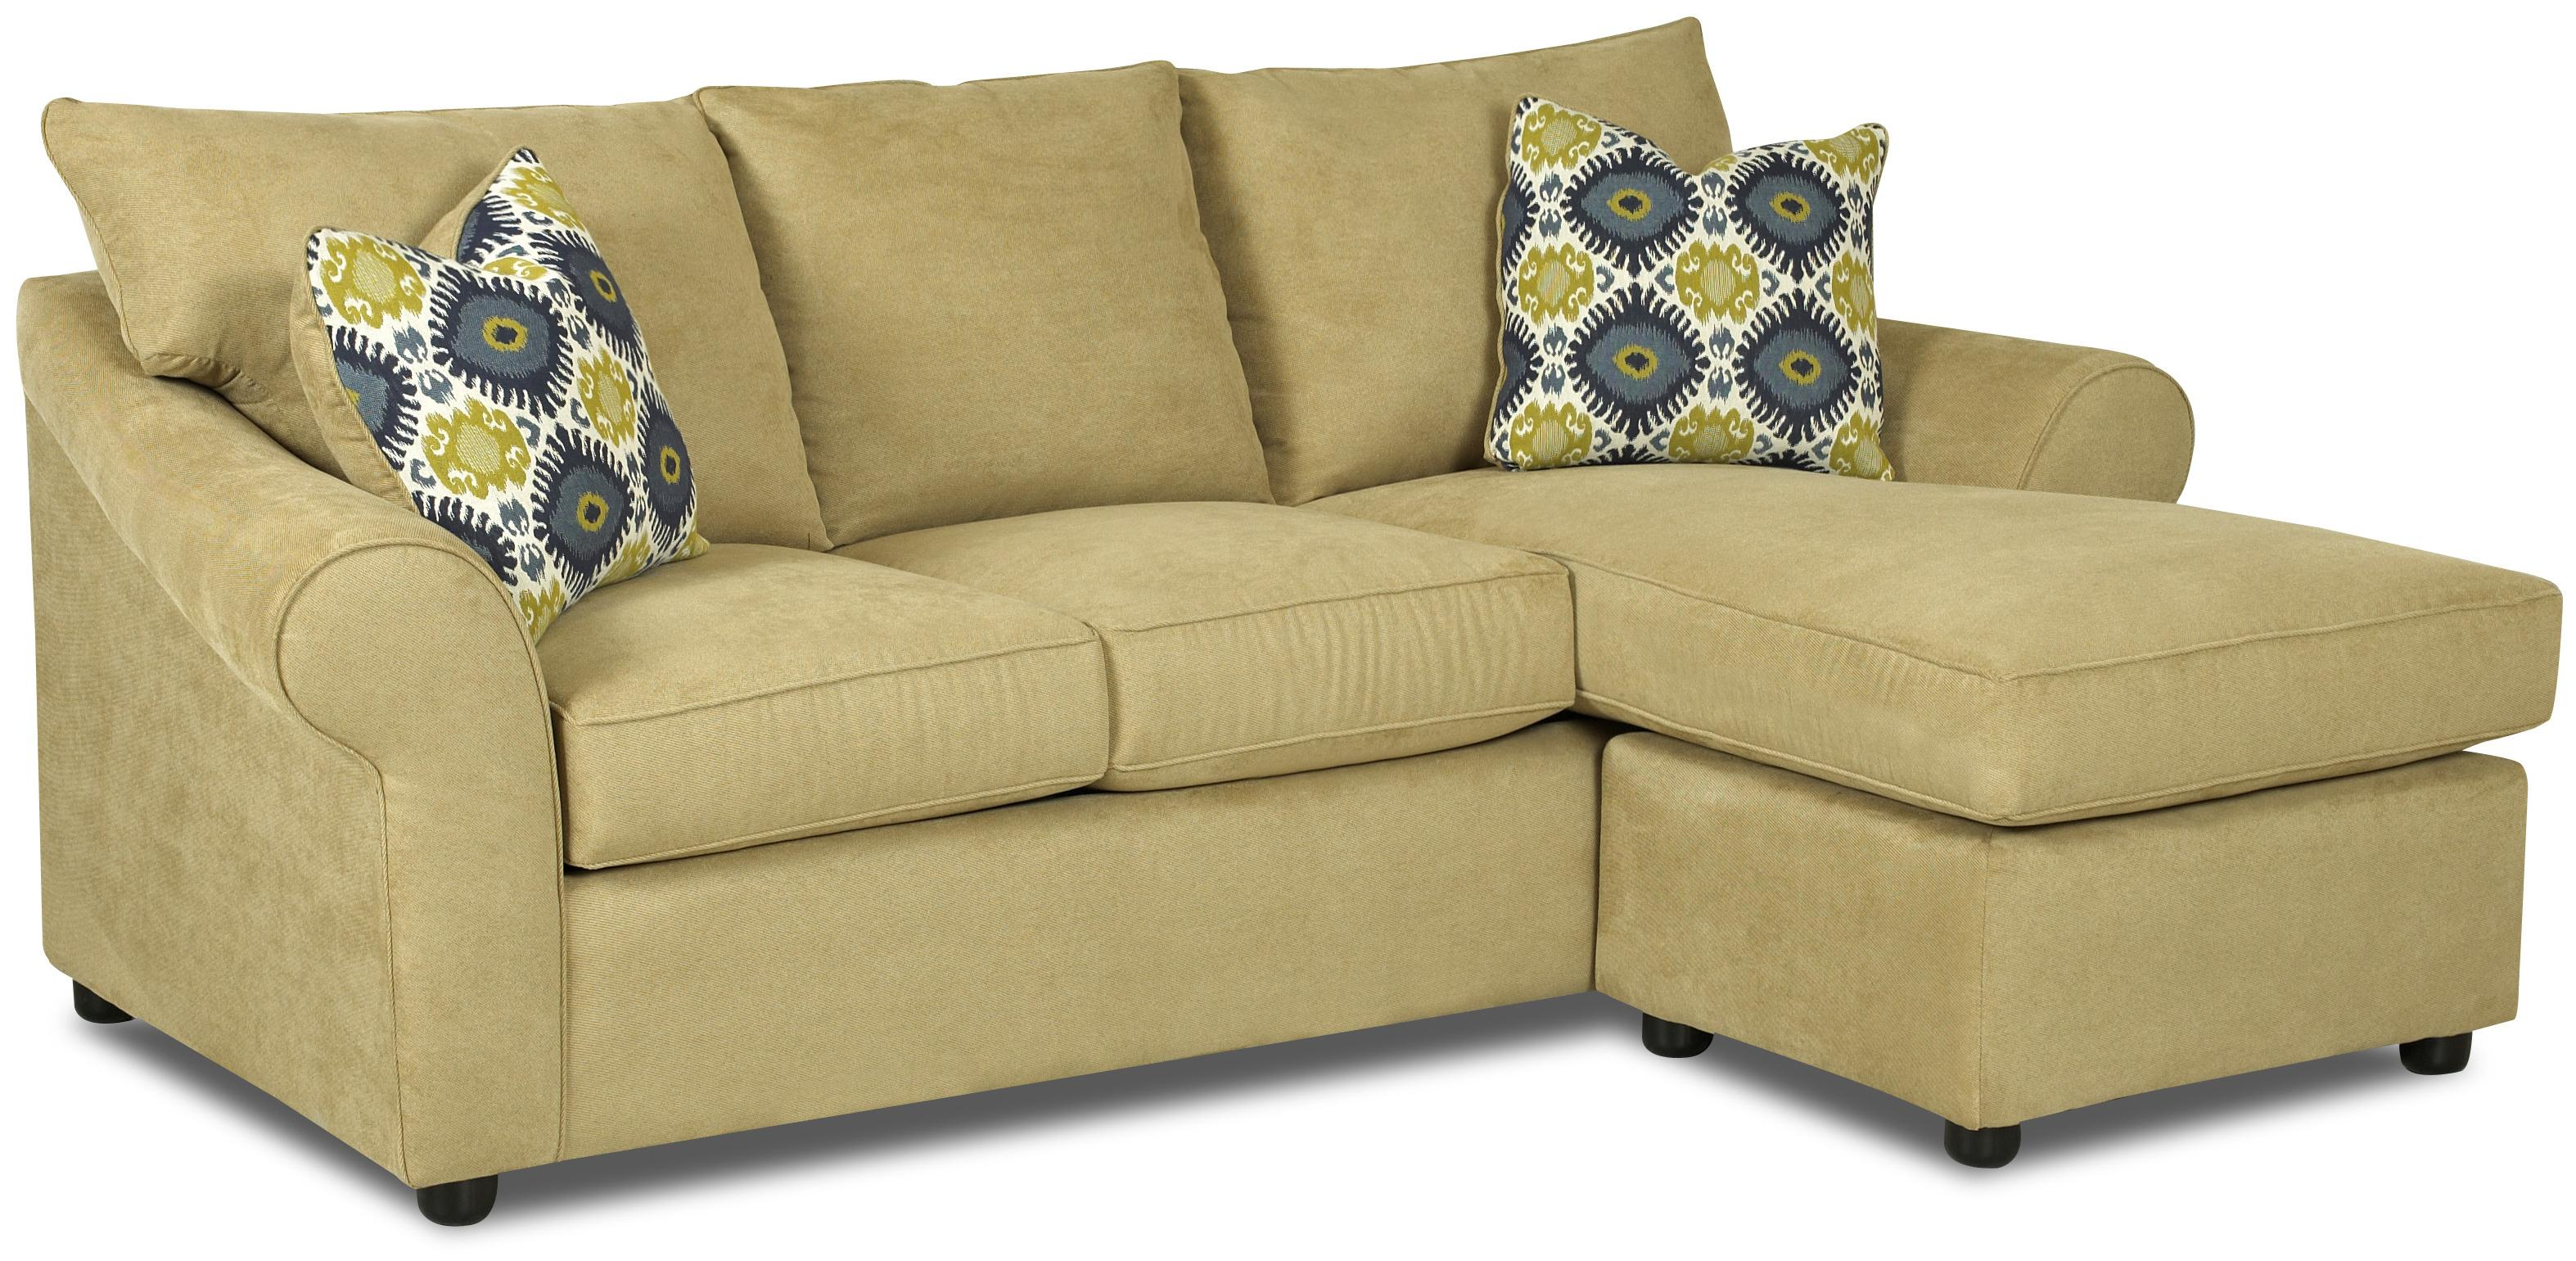 Ordinaire Sofa With Reversible Chaise Lounge